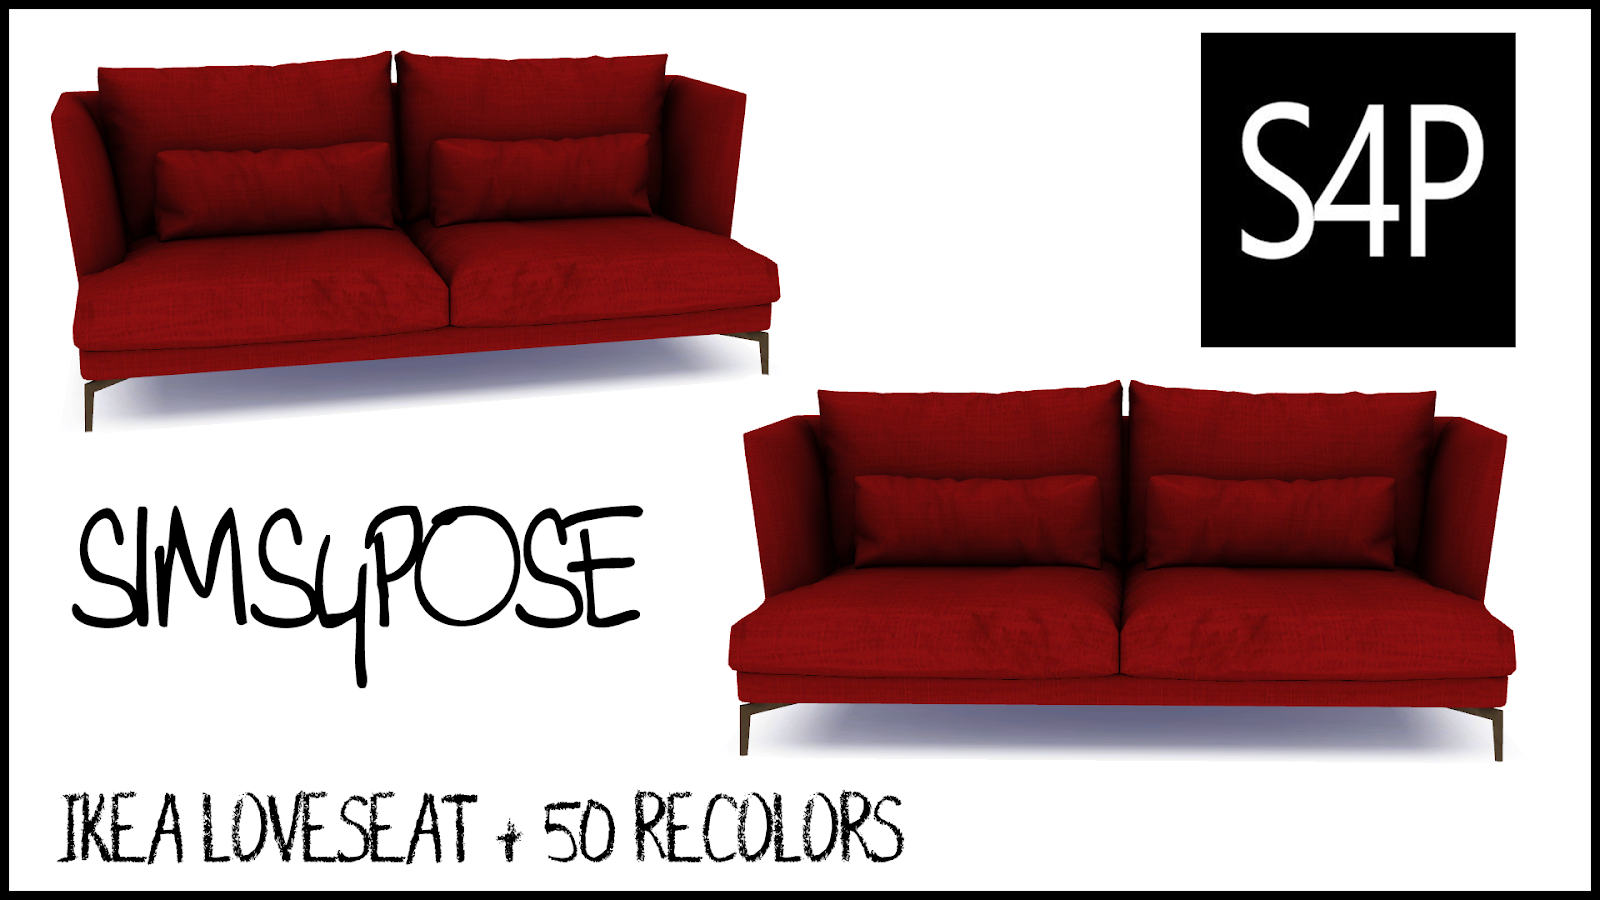 Ikea Loveseat Download Sims 4 Pose Ikea Loveseat Seating Mesh Sims 4 Pose Cc